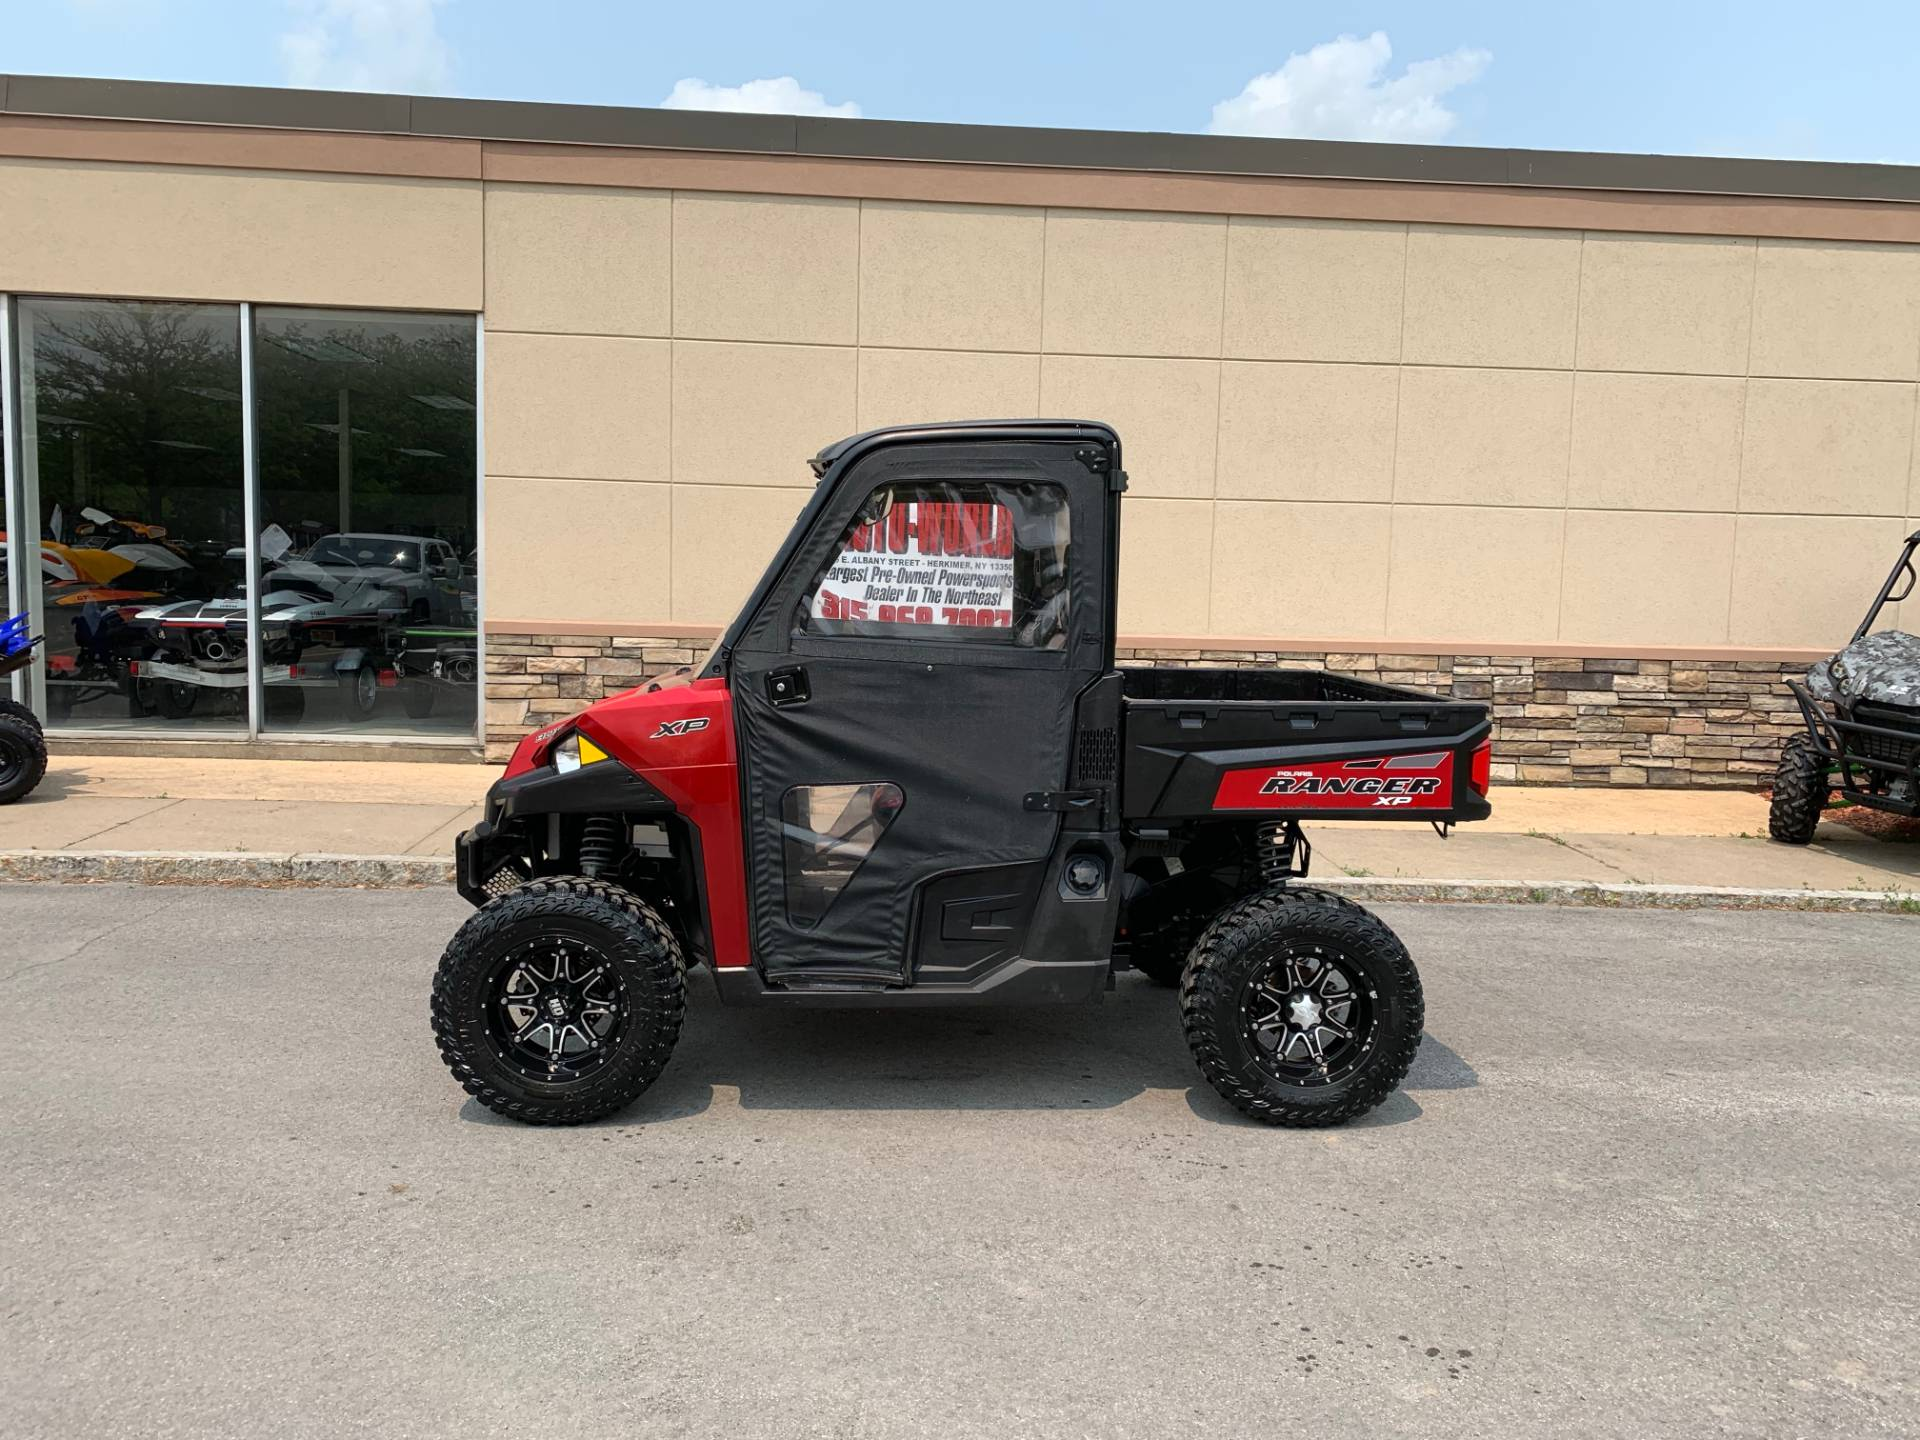 2015 Polaris Ranger >> Used 2015 Polaris Ranger Xp 900 Eps Utility Vehicles In Herkimer